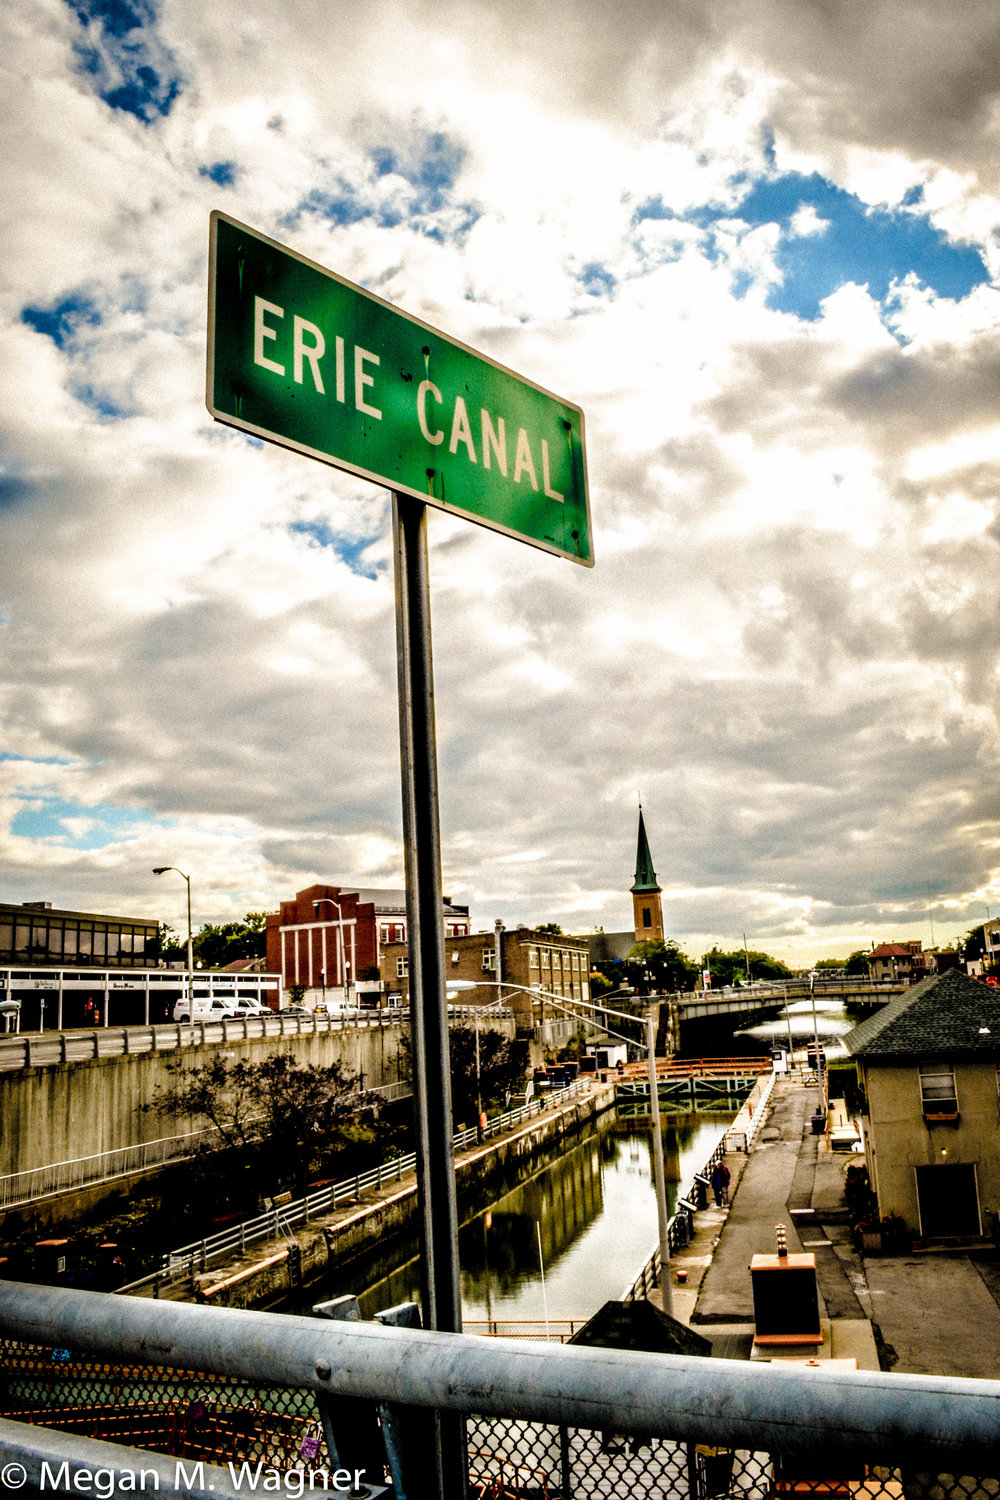 Erie Canal - Lockport, NY